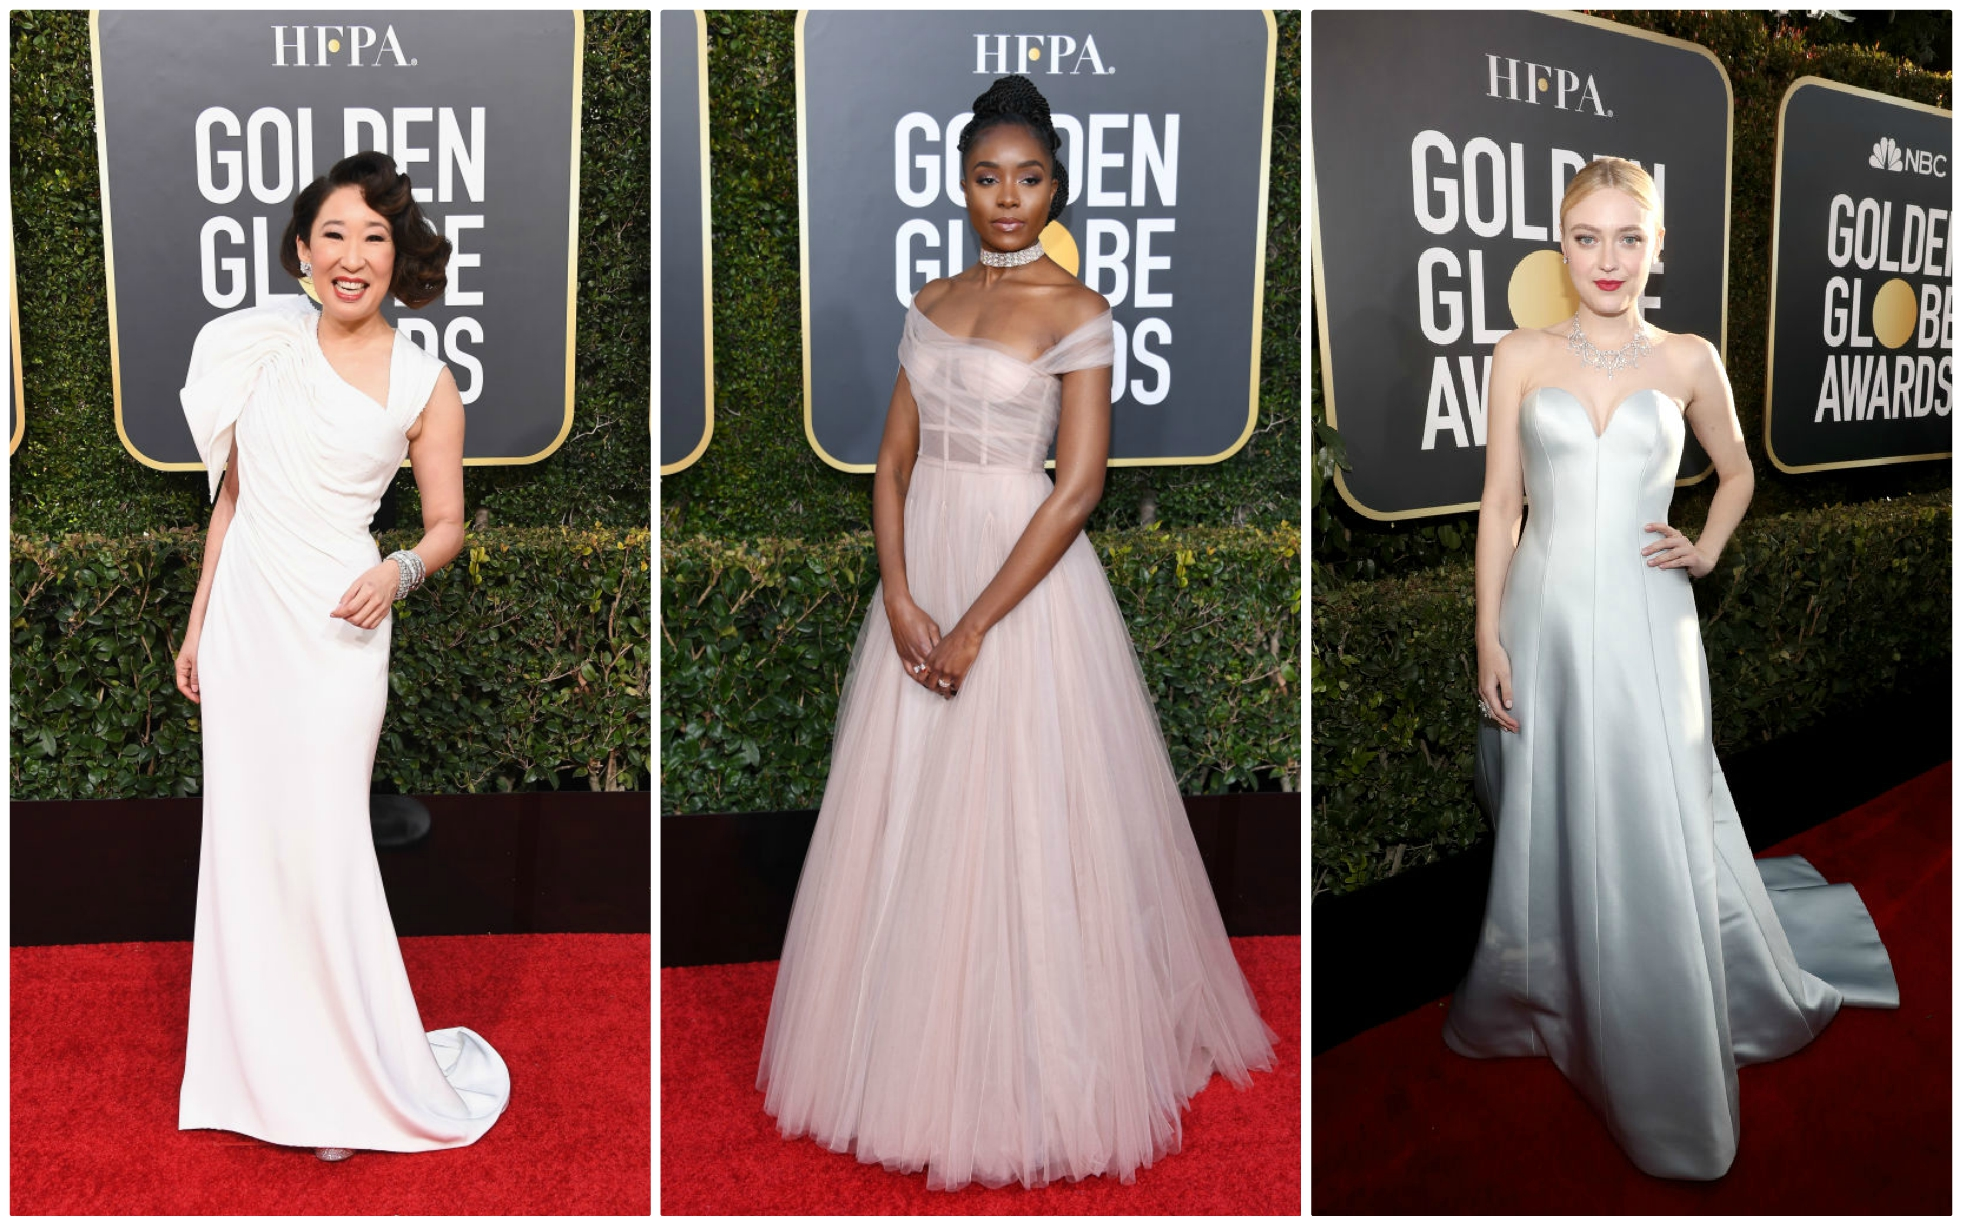 Attention brides: Check out these Golden Globes gowns for wedding dress inspiration